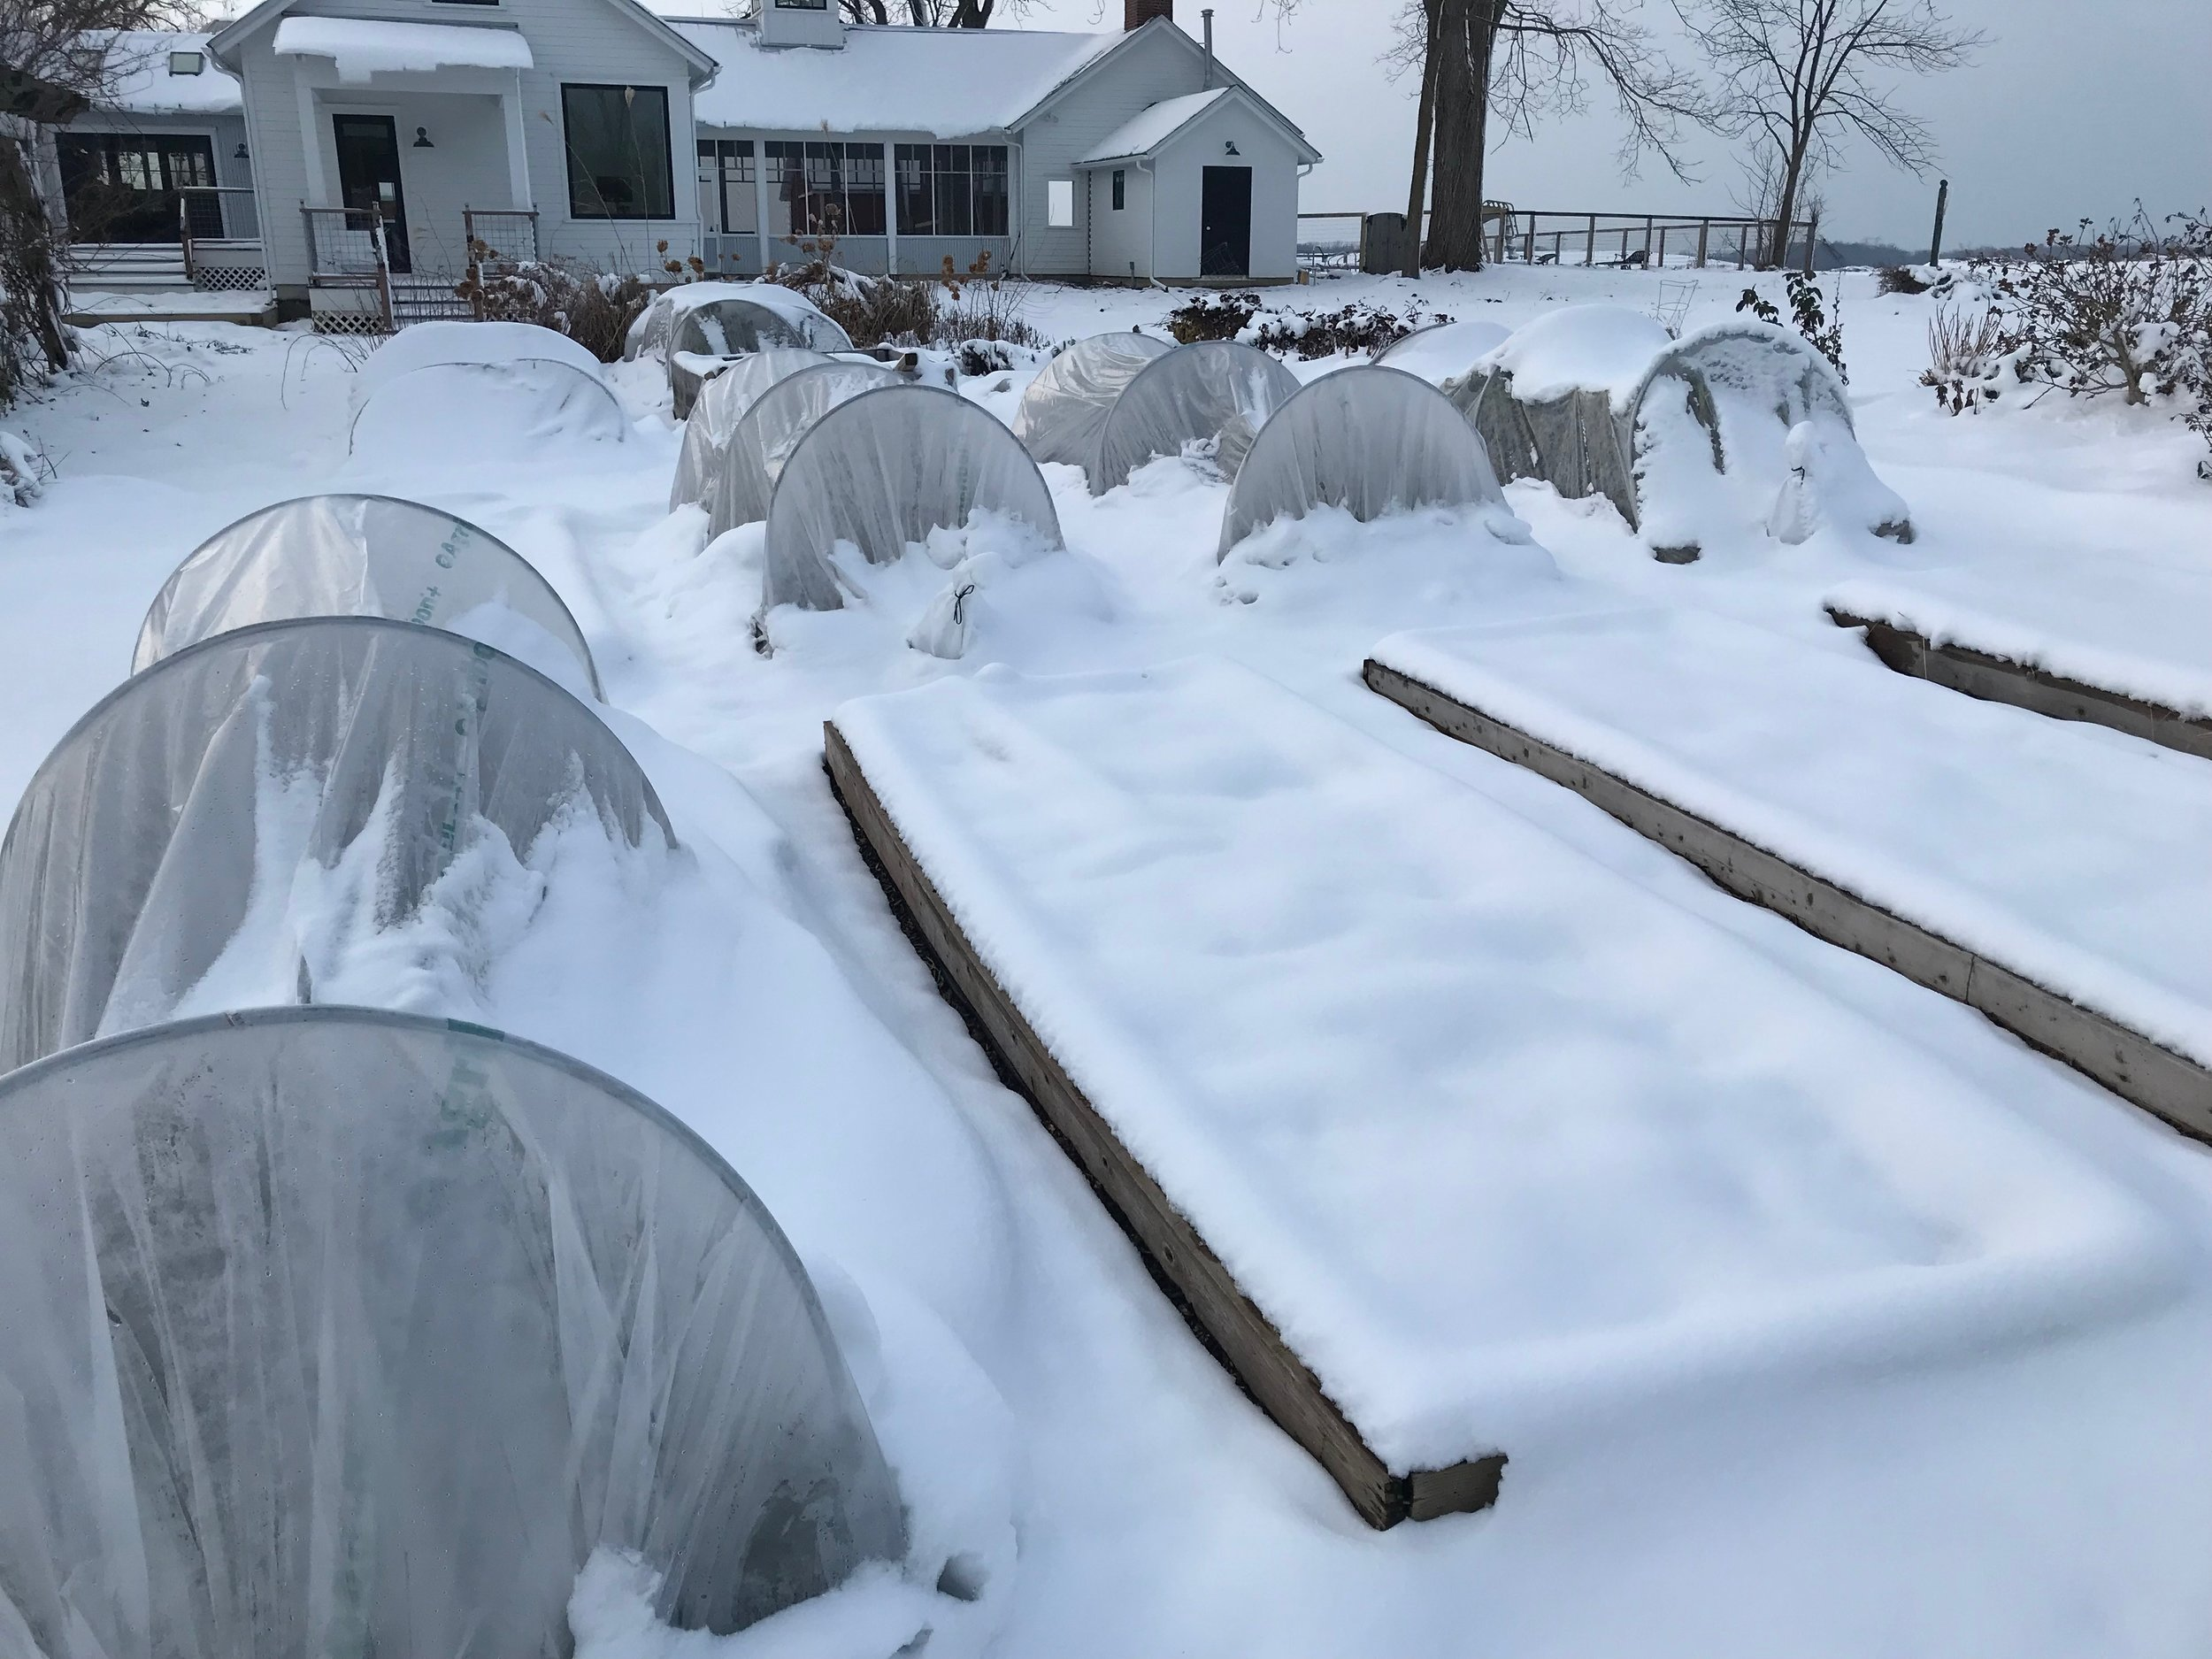 December beds with blankets of snow